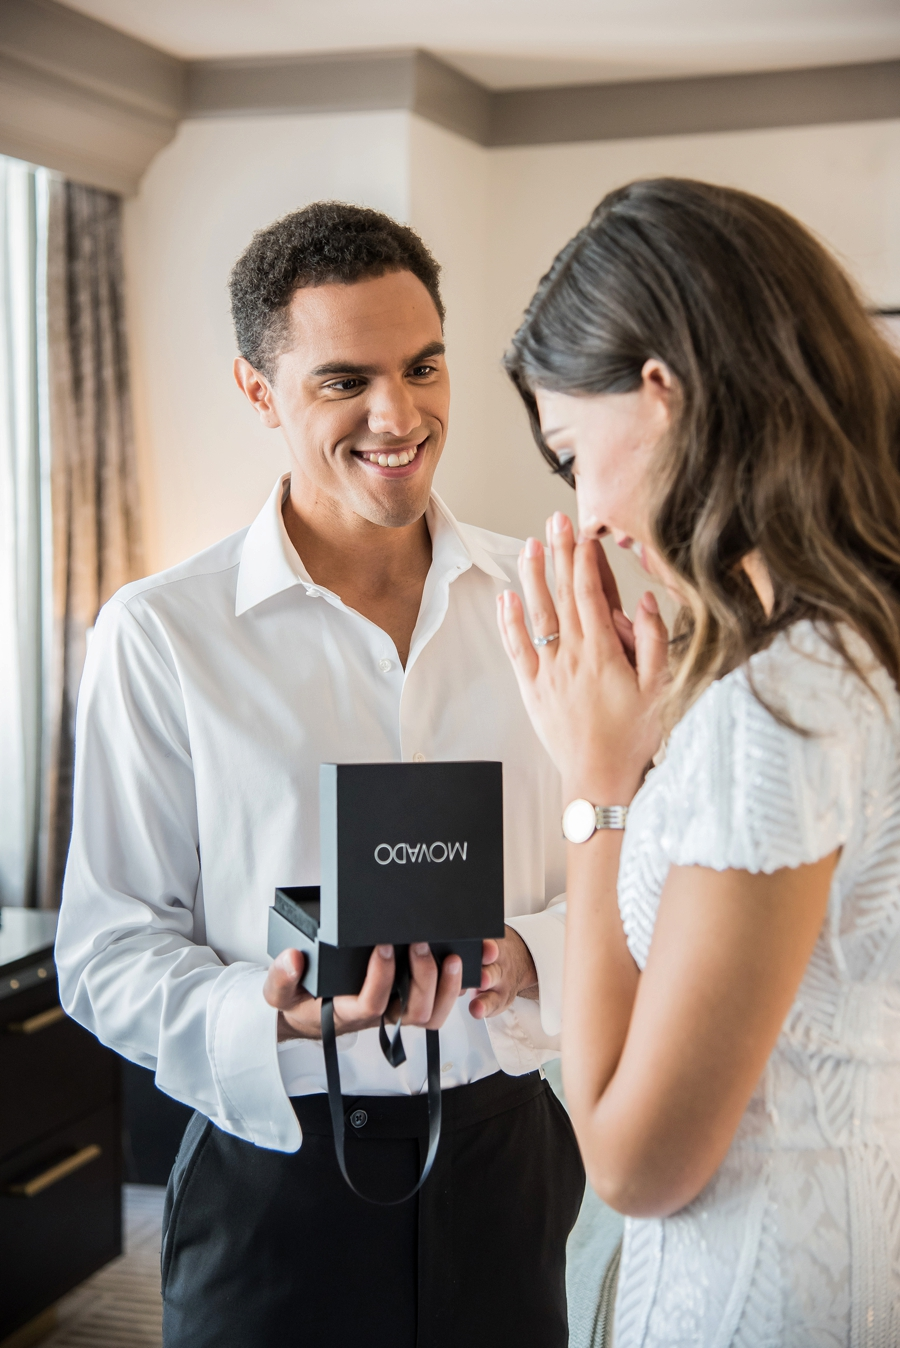 Modern Rooftop Elopement Inspiration With Chic Wedding Day Gift Ideas via TheELD.com modern rooftop elopement inspiration with chic wedding day gift ideas - A Modern Rooftop Elopement Inspiration 0011 - Modern Rooftop Elopement Inspiration With Chic Wedding Day Gift Ideas